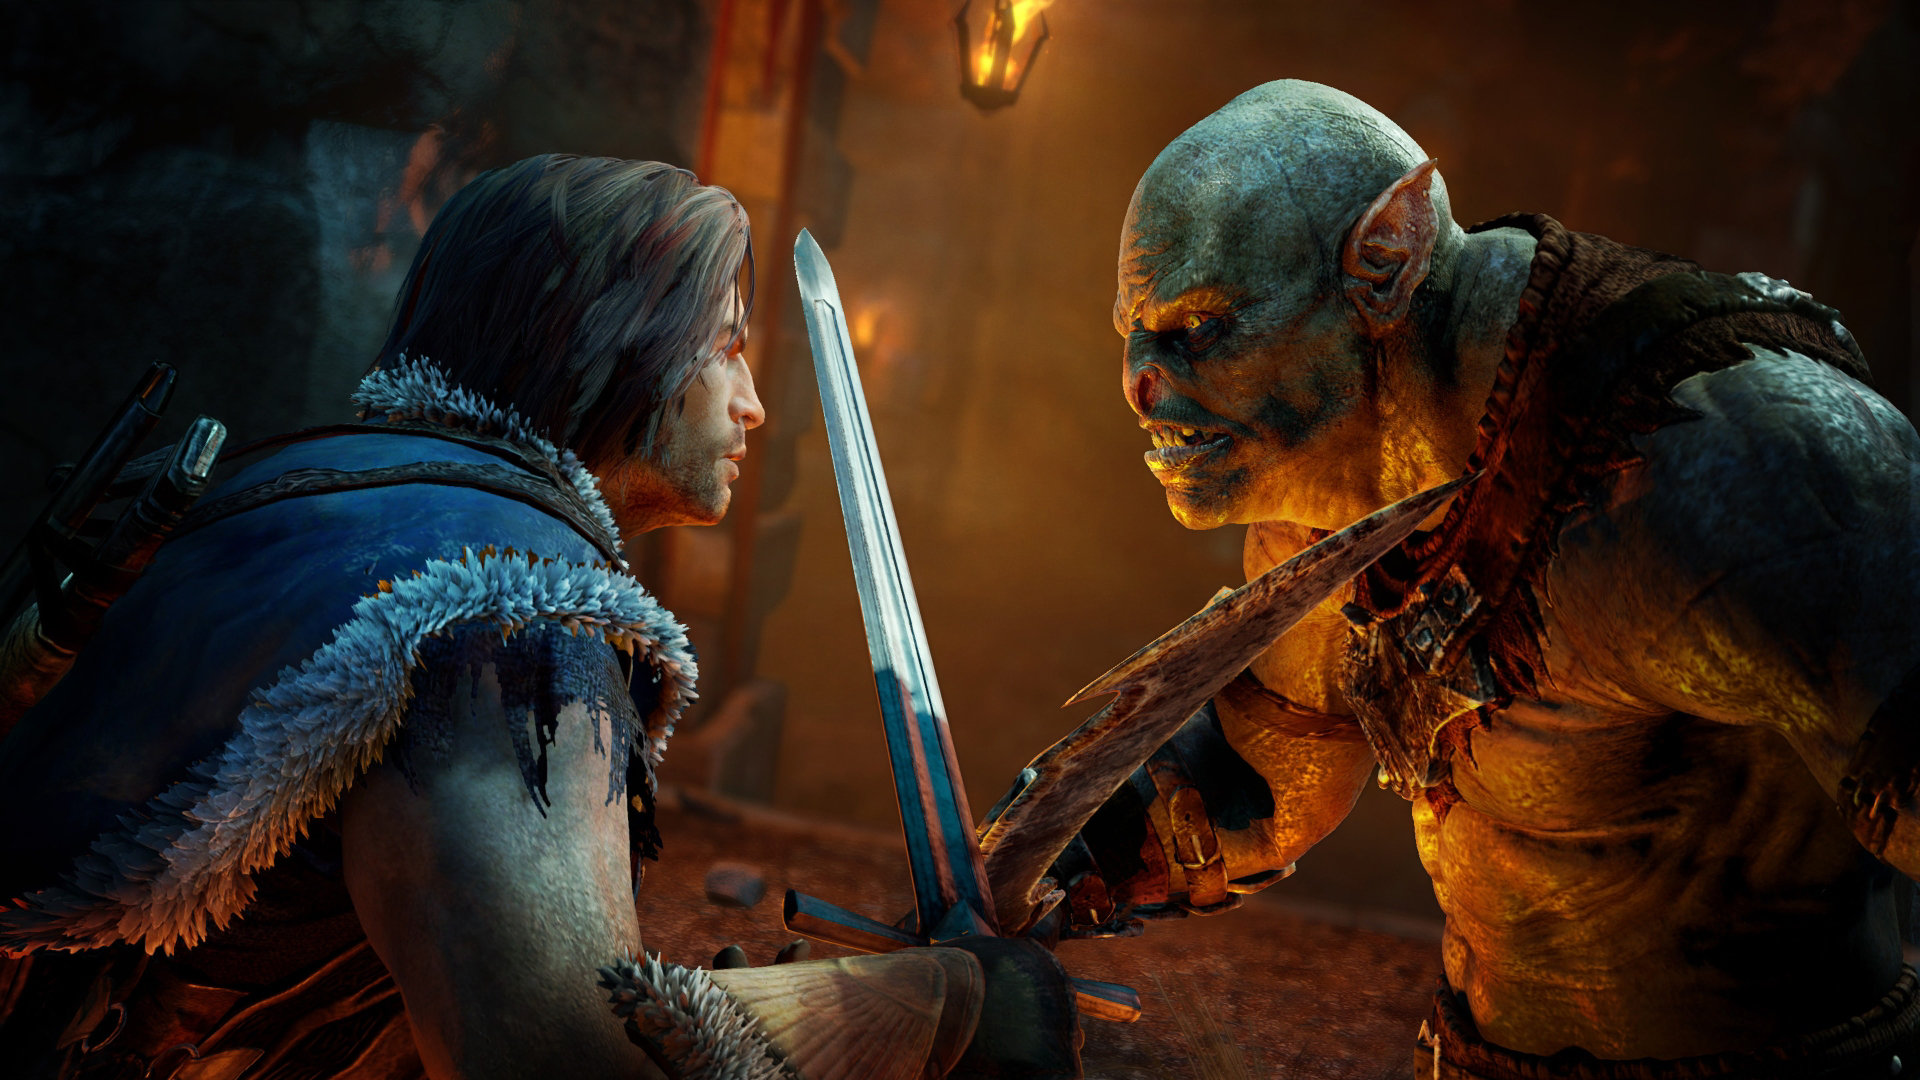 middle-earth-shadow-of-mordor-screen-07-